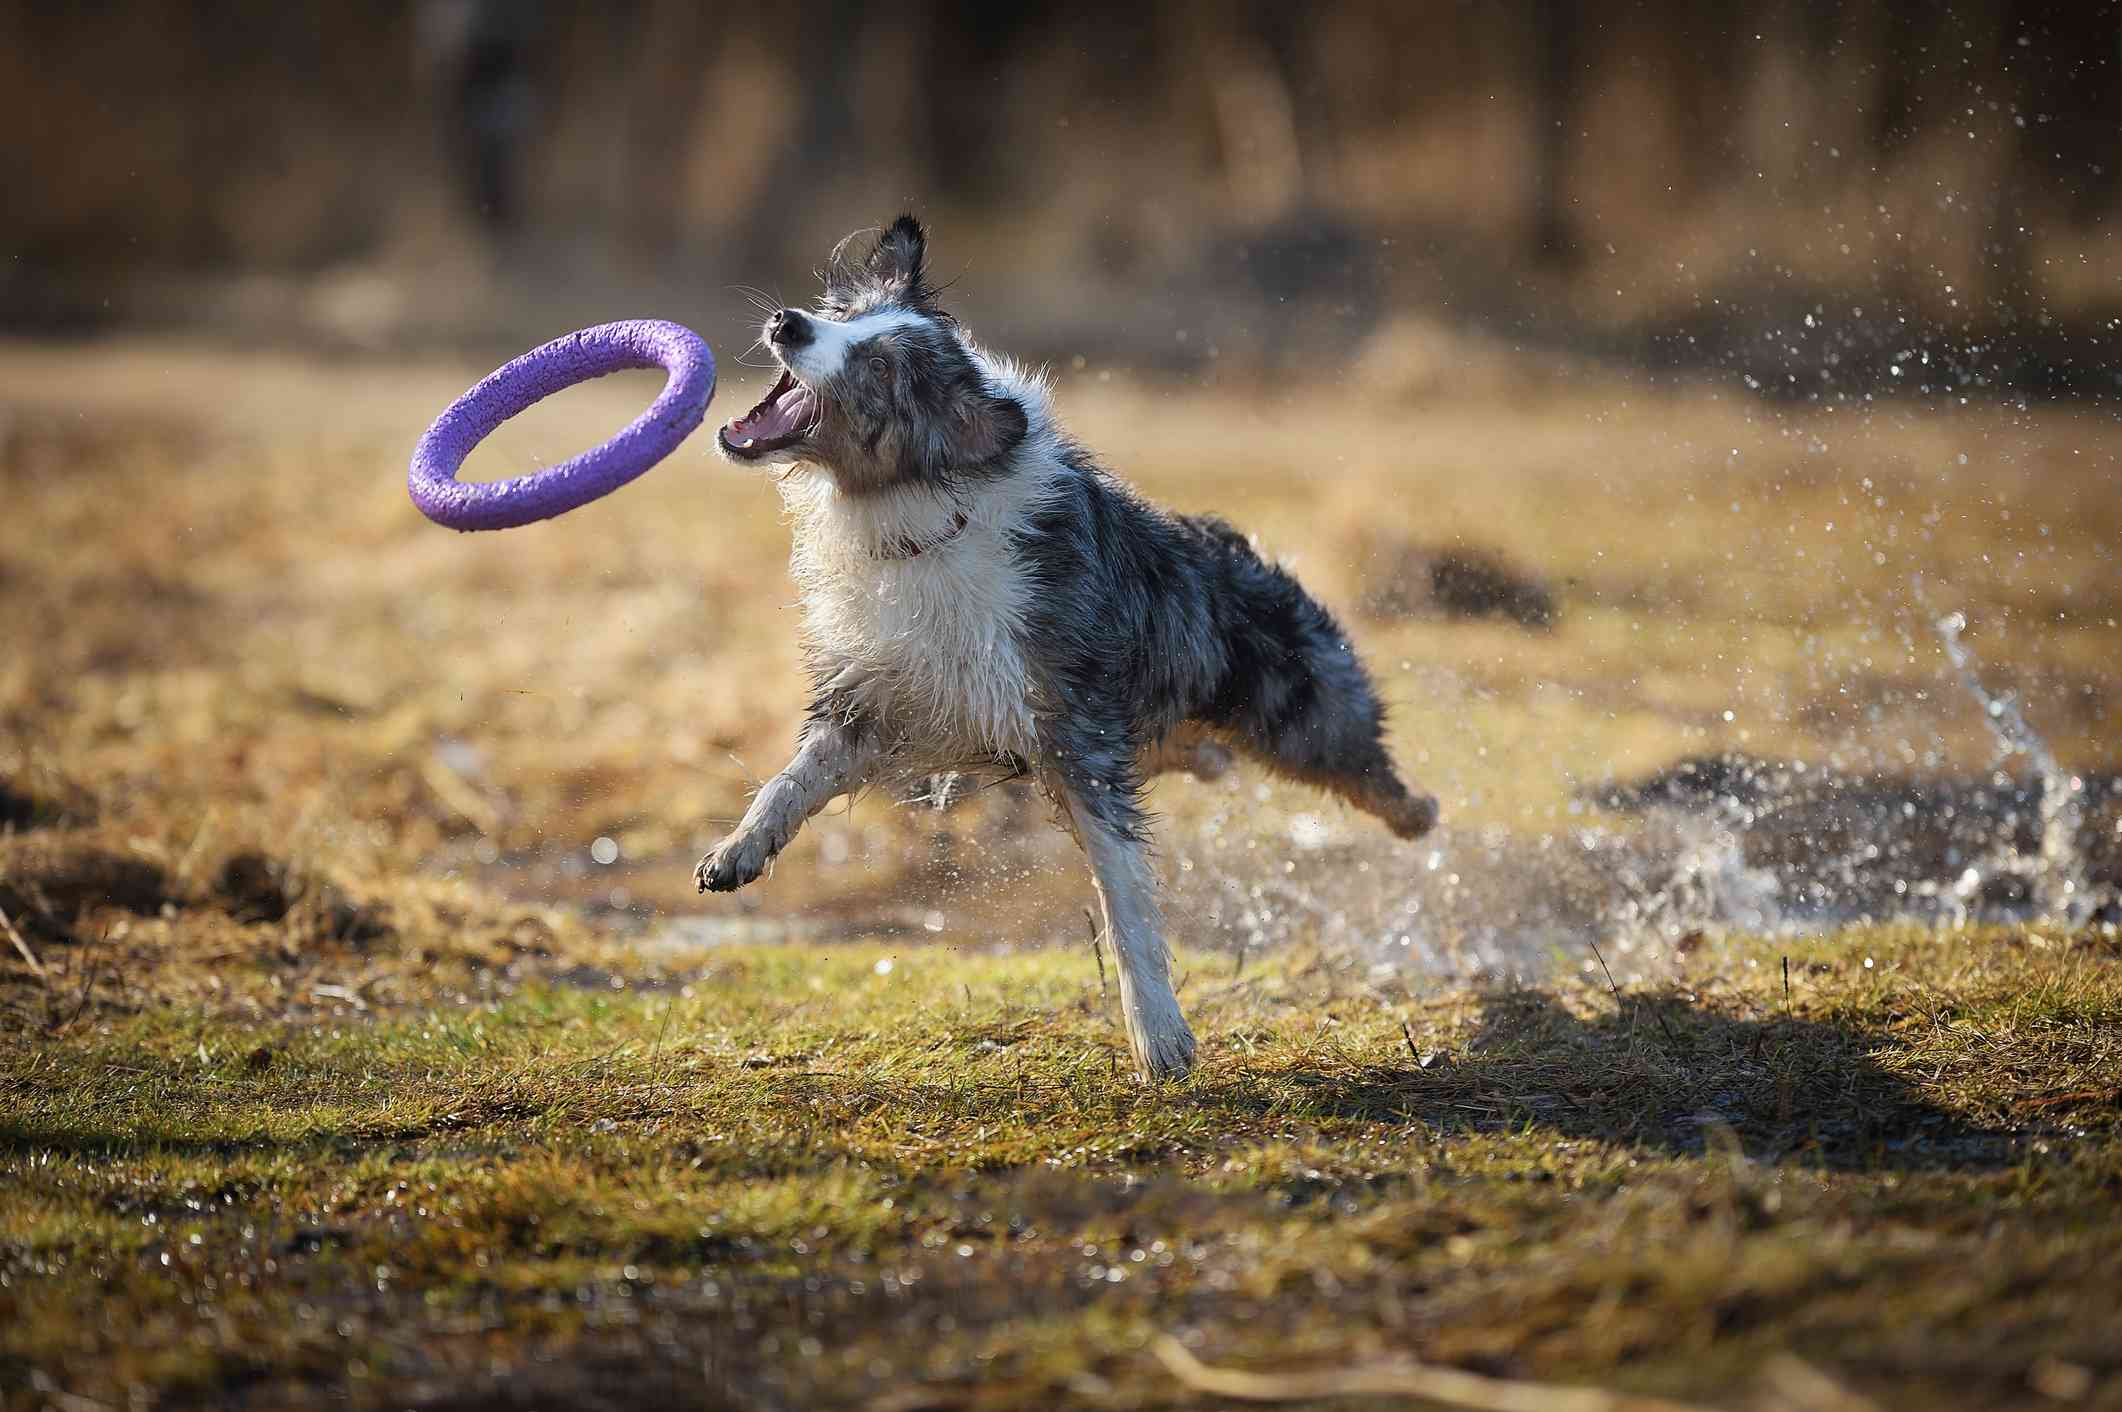 An Australian shepherd jumping and catching a ring toy in its mouth.